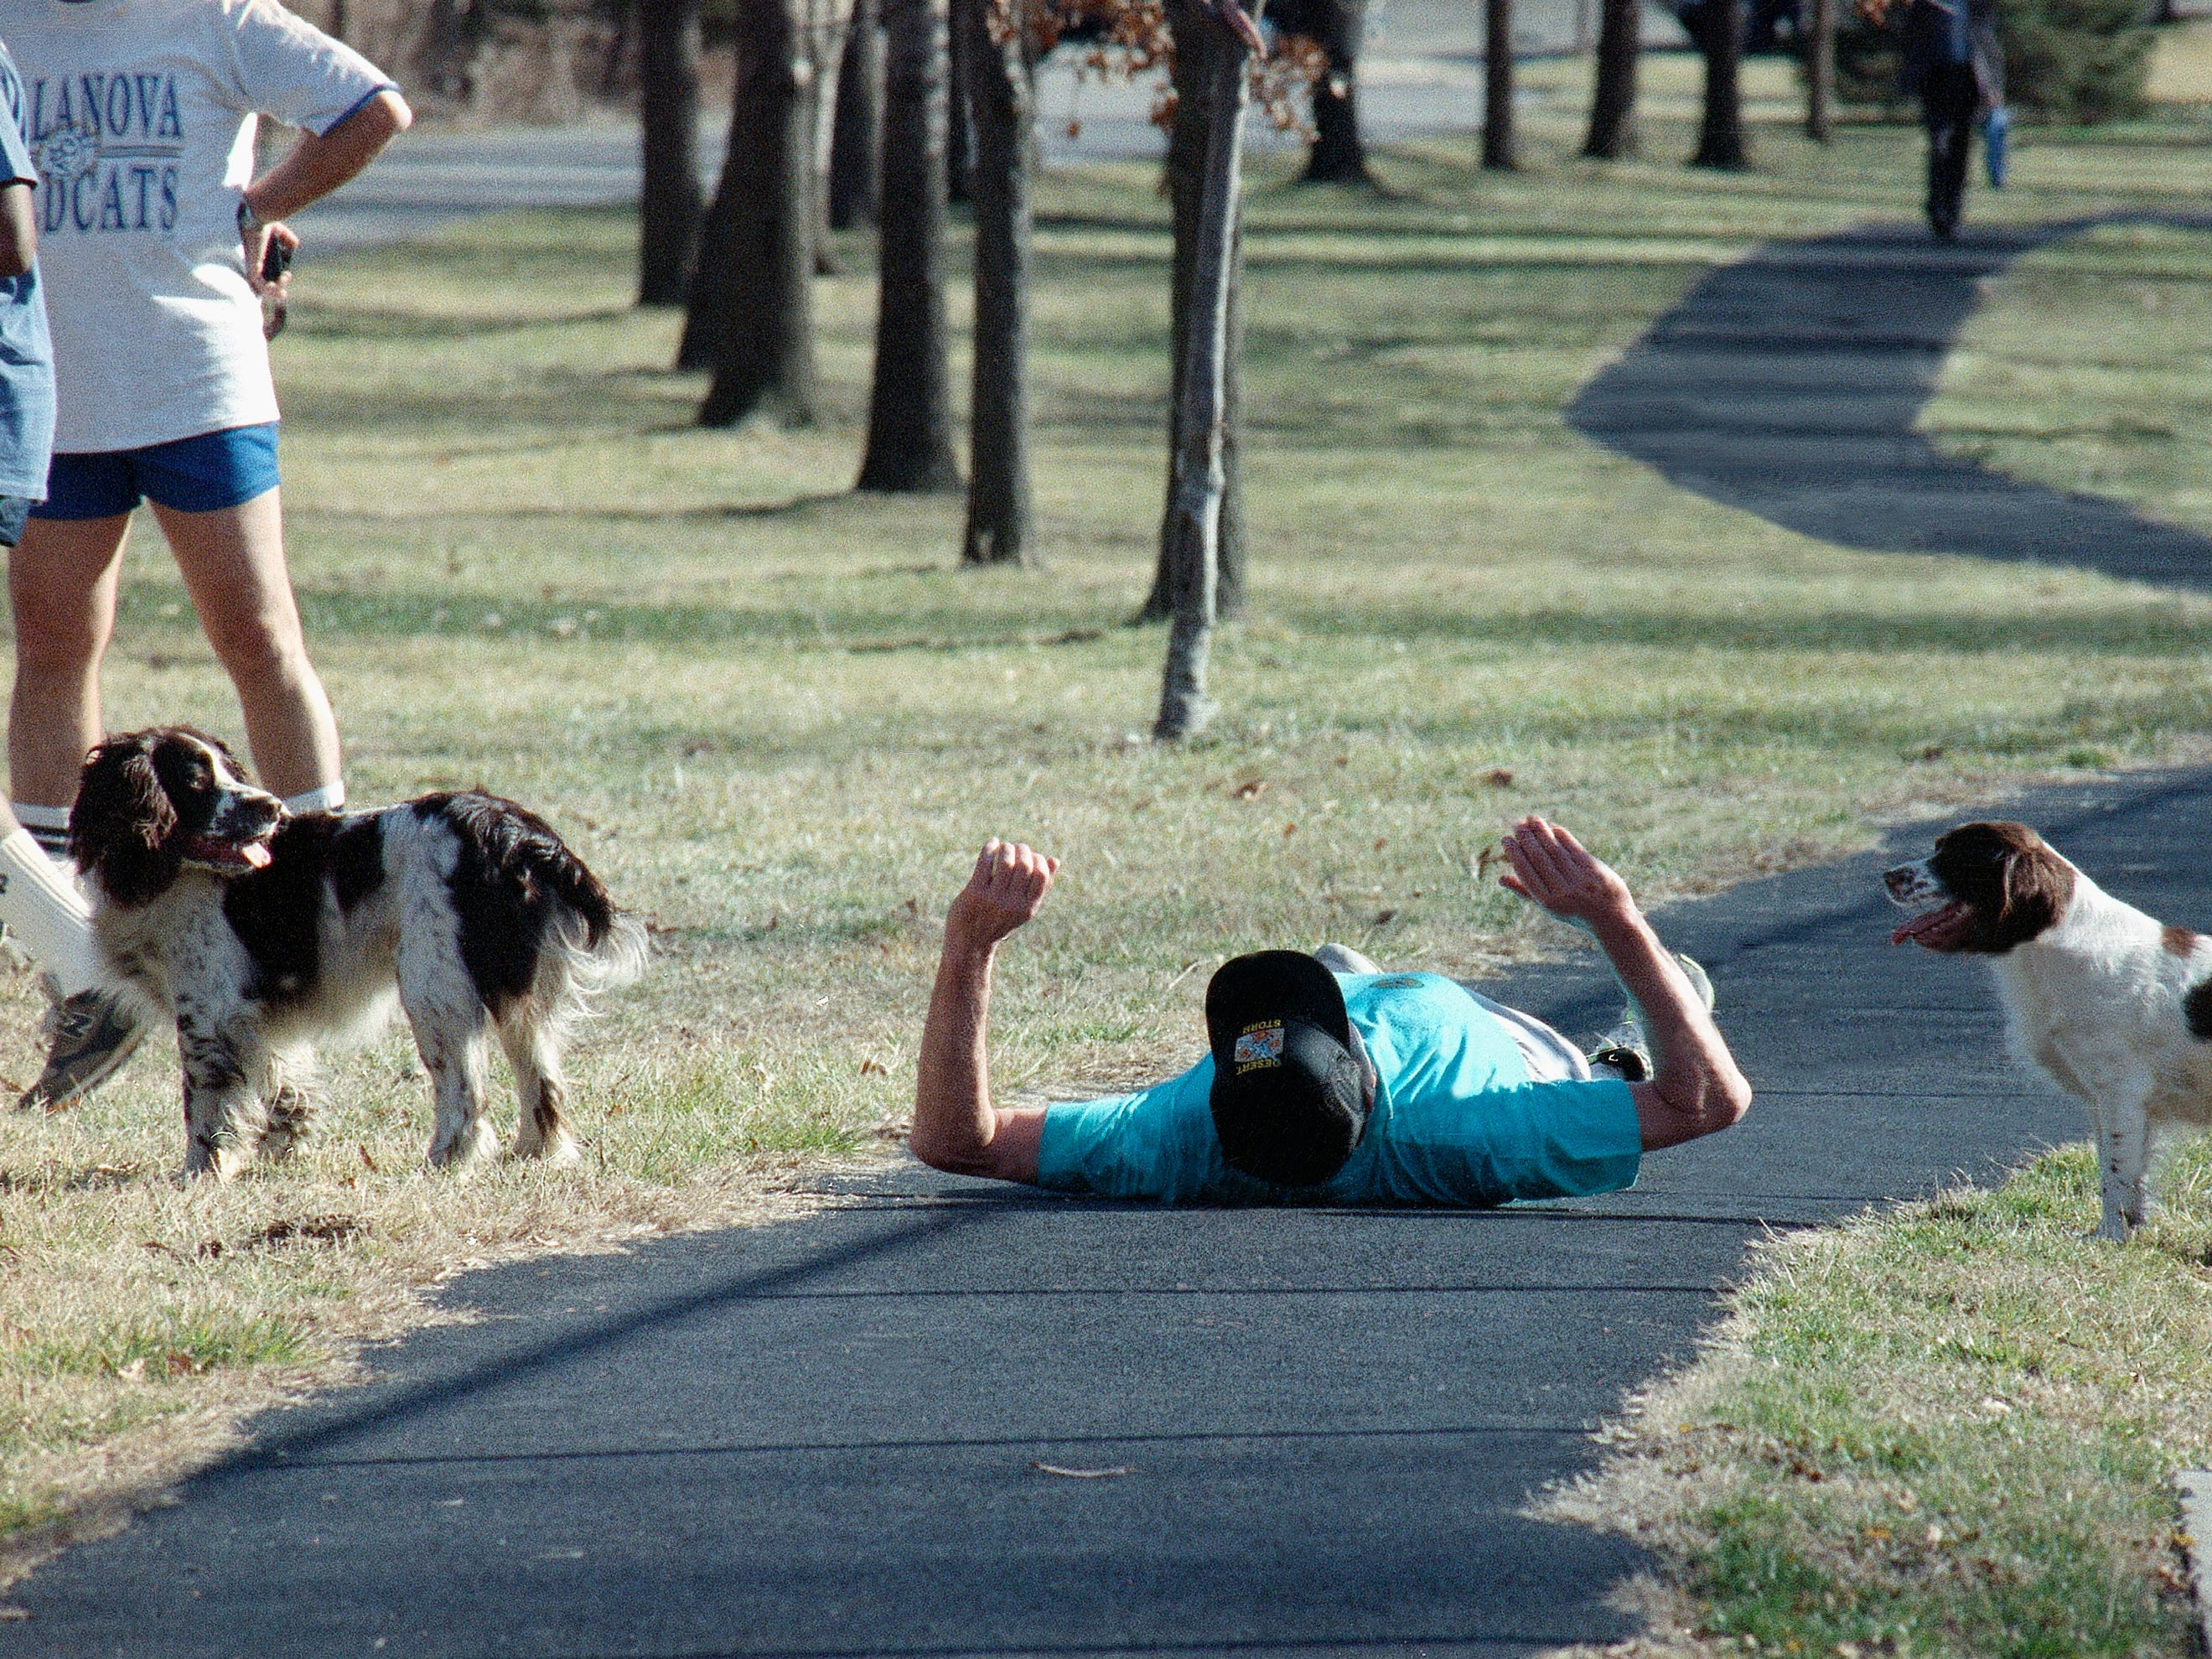 President George H.W. Bush lies on his back stretching out after jogging on Monday, Feb. 4, 1991 in Washington. Bush took his dog Ranger, left, and Millie jogging as the temperatures neared 70. (AP Photo/Dennis Cook)